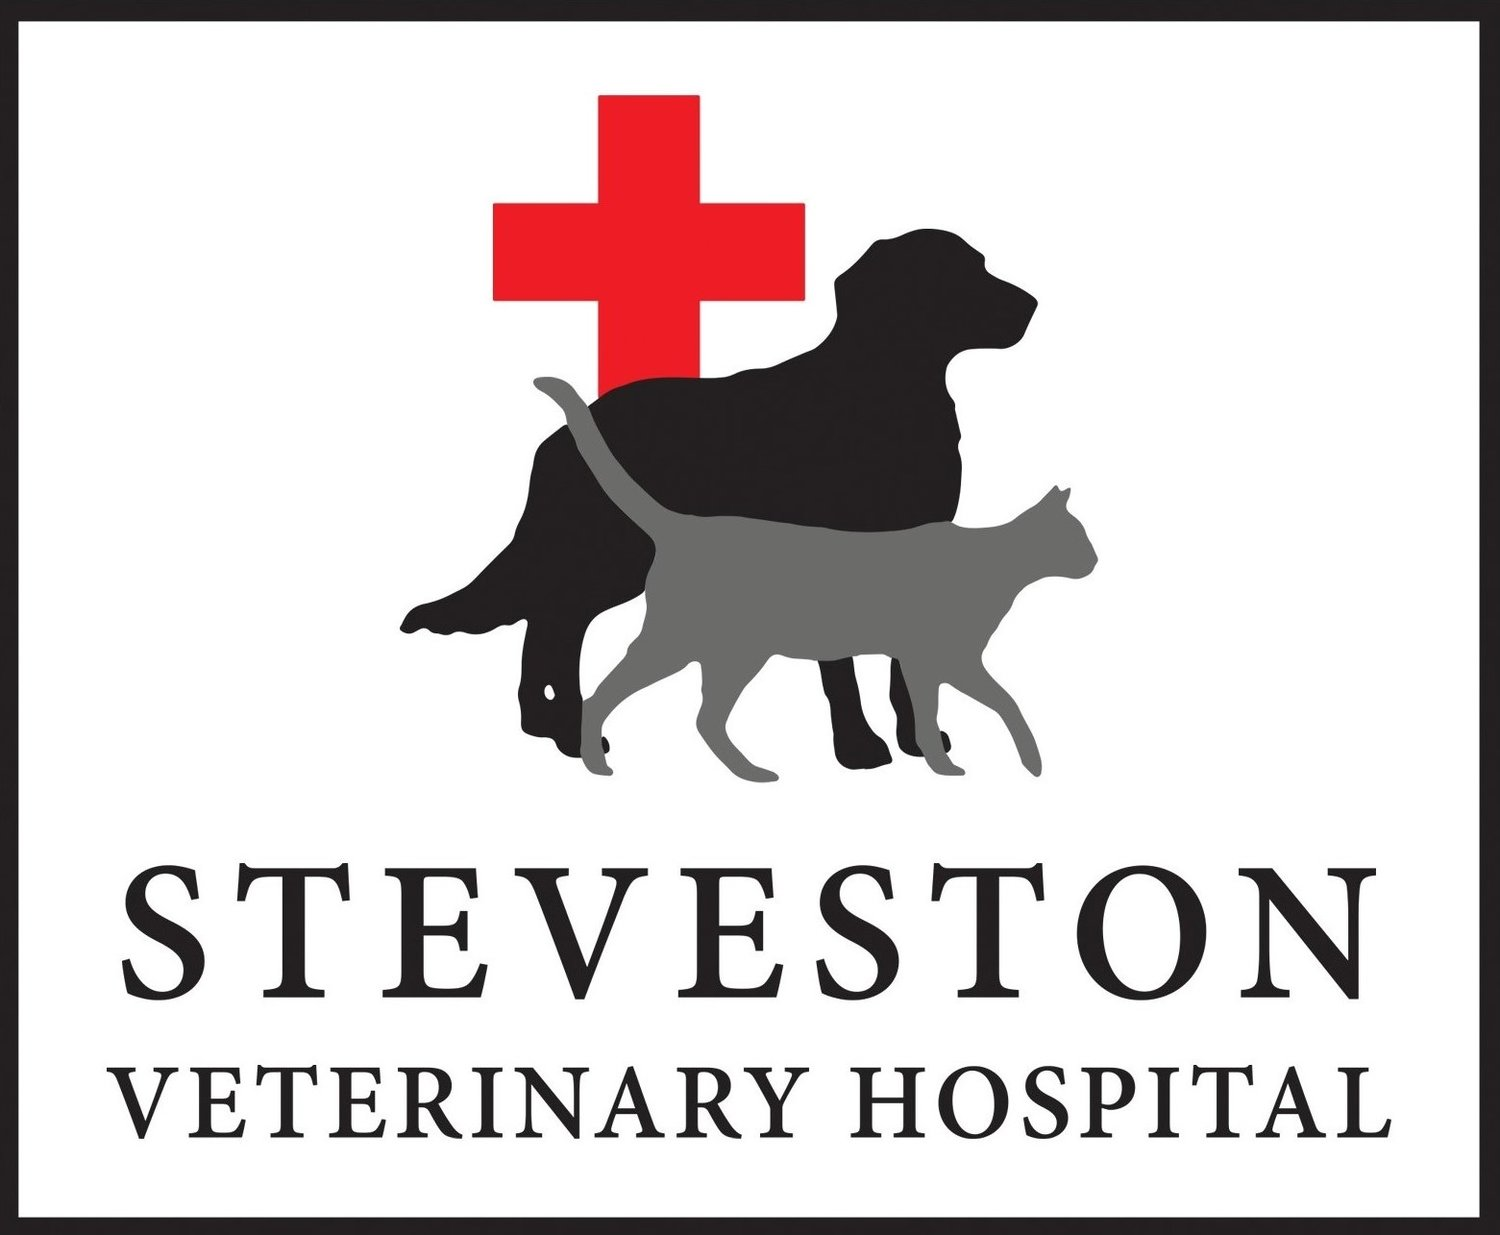 Steveston Veterinary Hospital